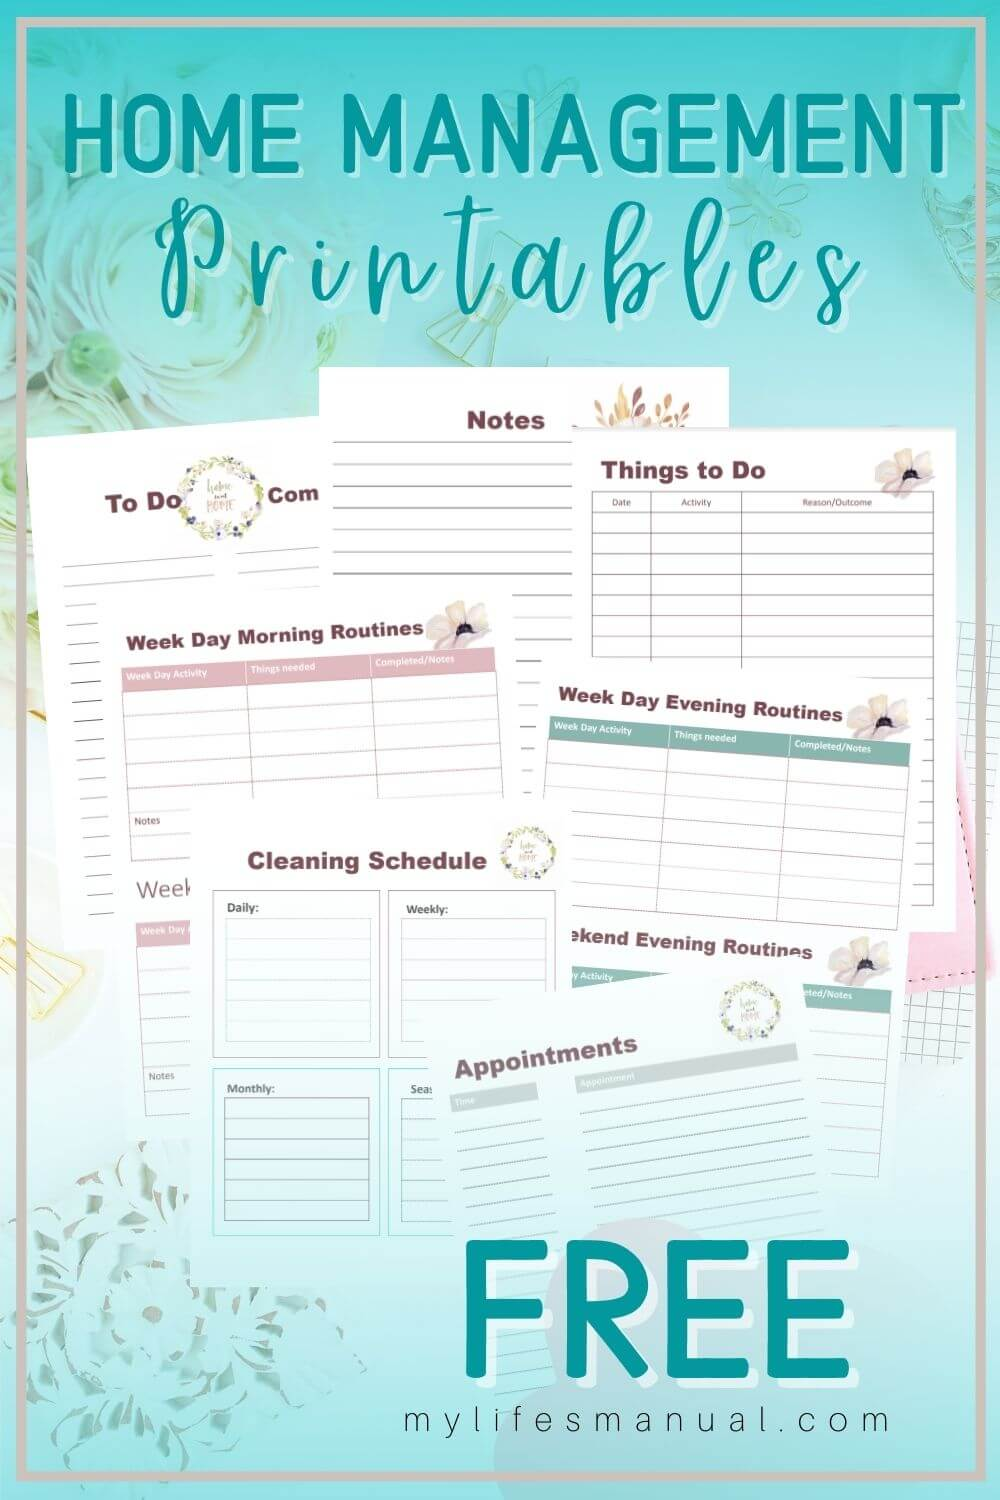 Grab these free home management printables. You'll get pretty printable planner for home cleaning schedule, to-do list, appointments, and routines